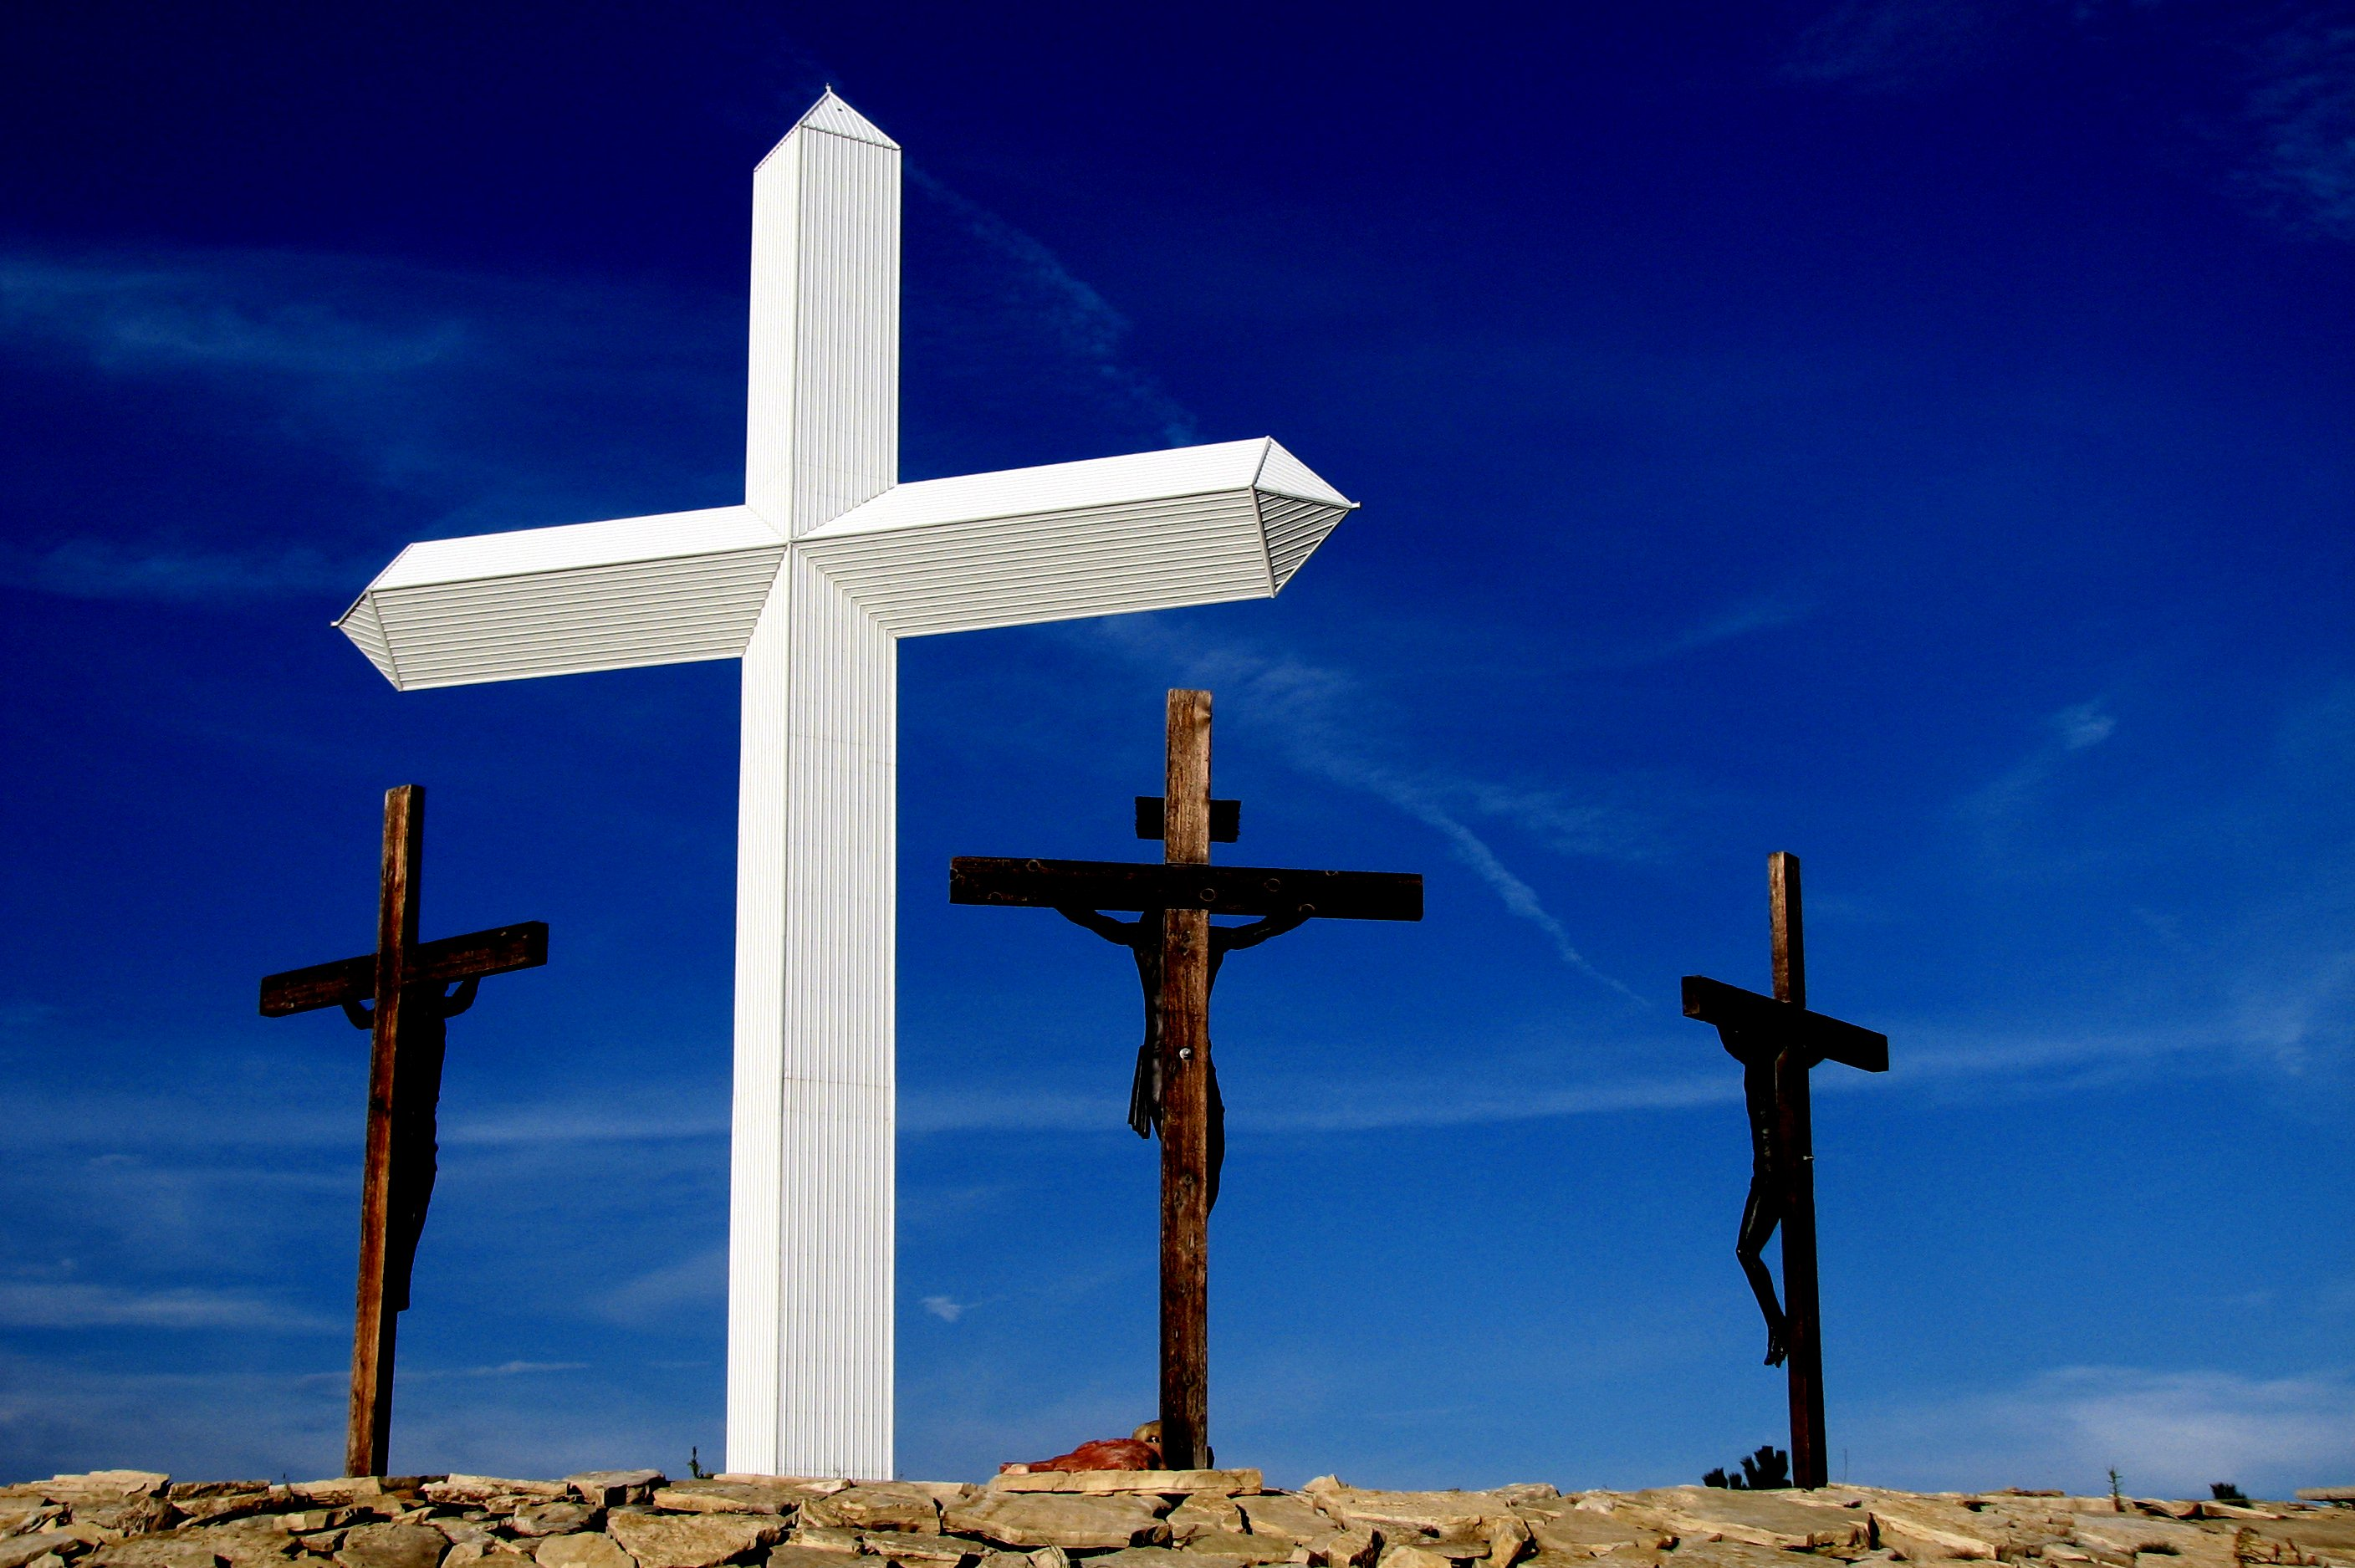 Weatherford (OK) United States  city photo : 2006 08 22 United States Texas Groom Cross of our Lord Jesus ...